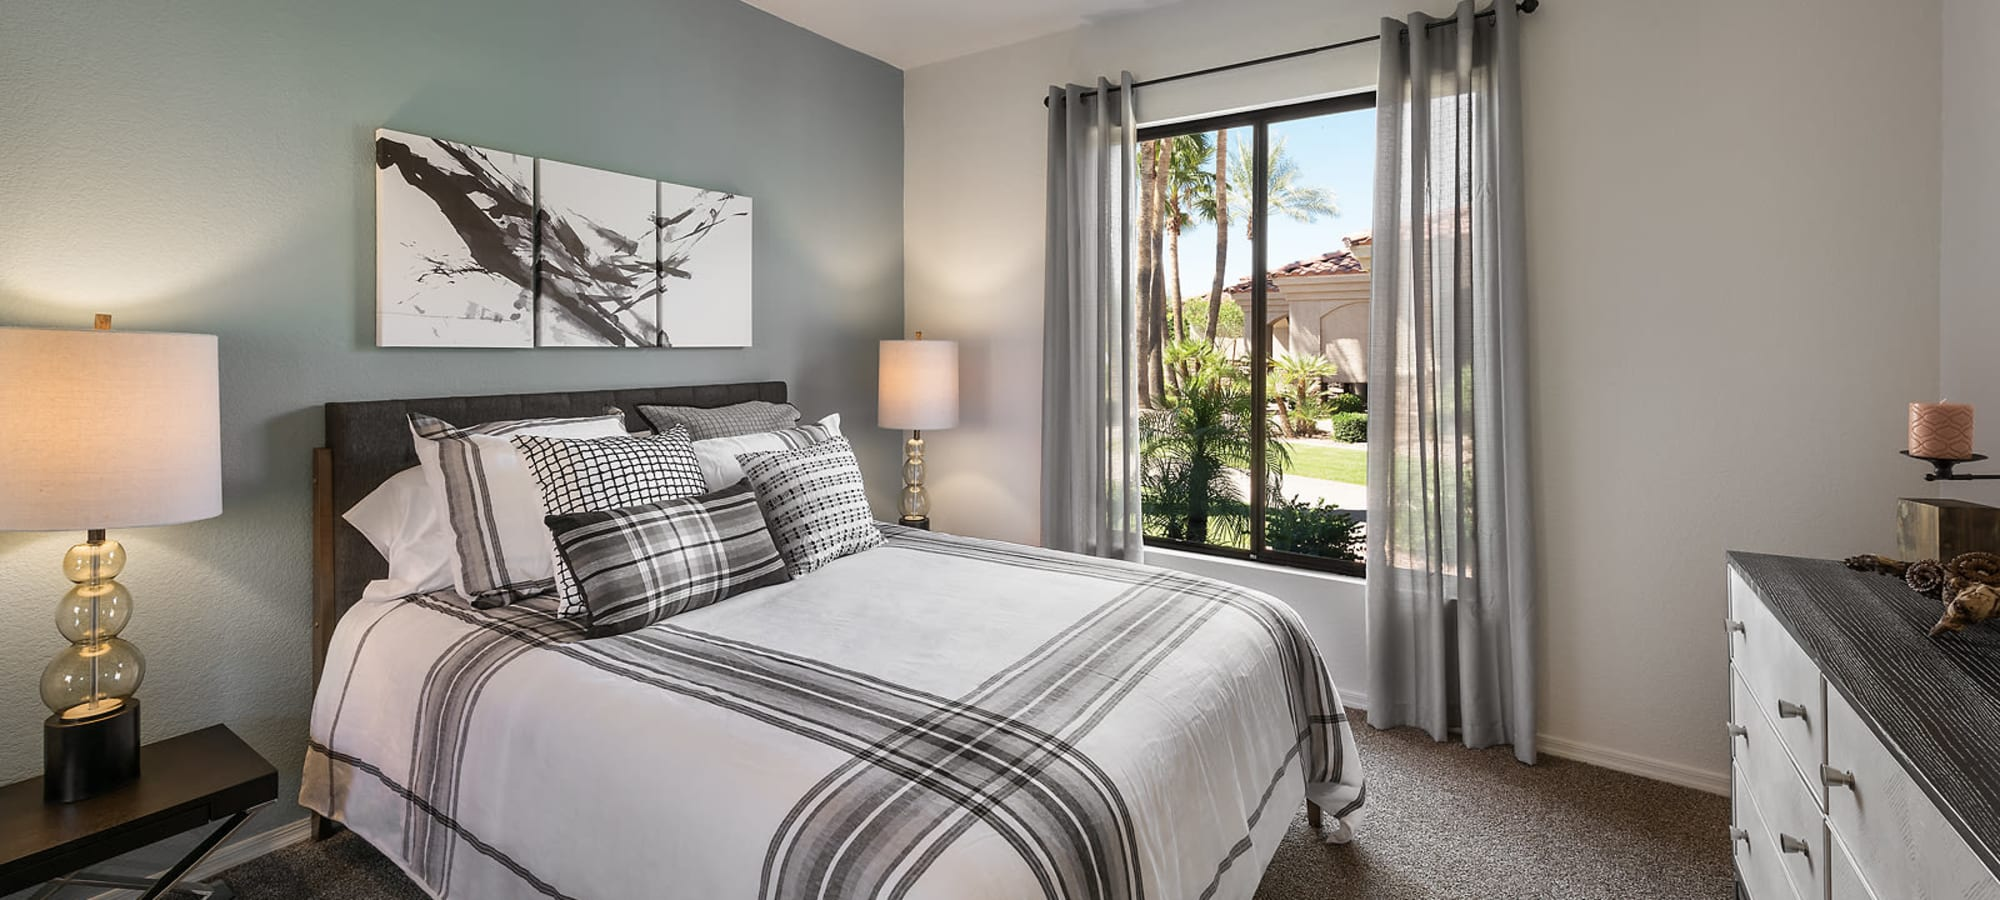 Spacious and well lit bedroom in a model home at San Pedregal in Phoenix, Arizona